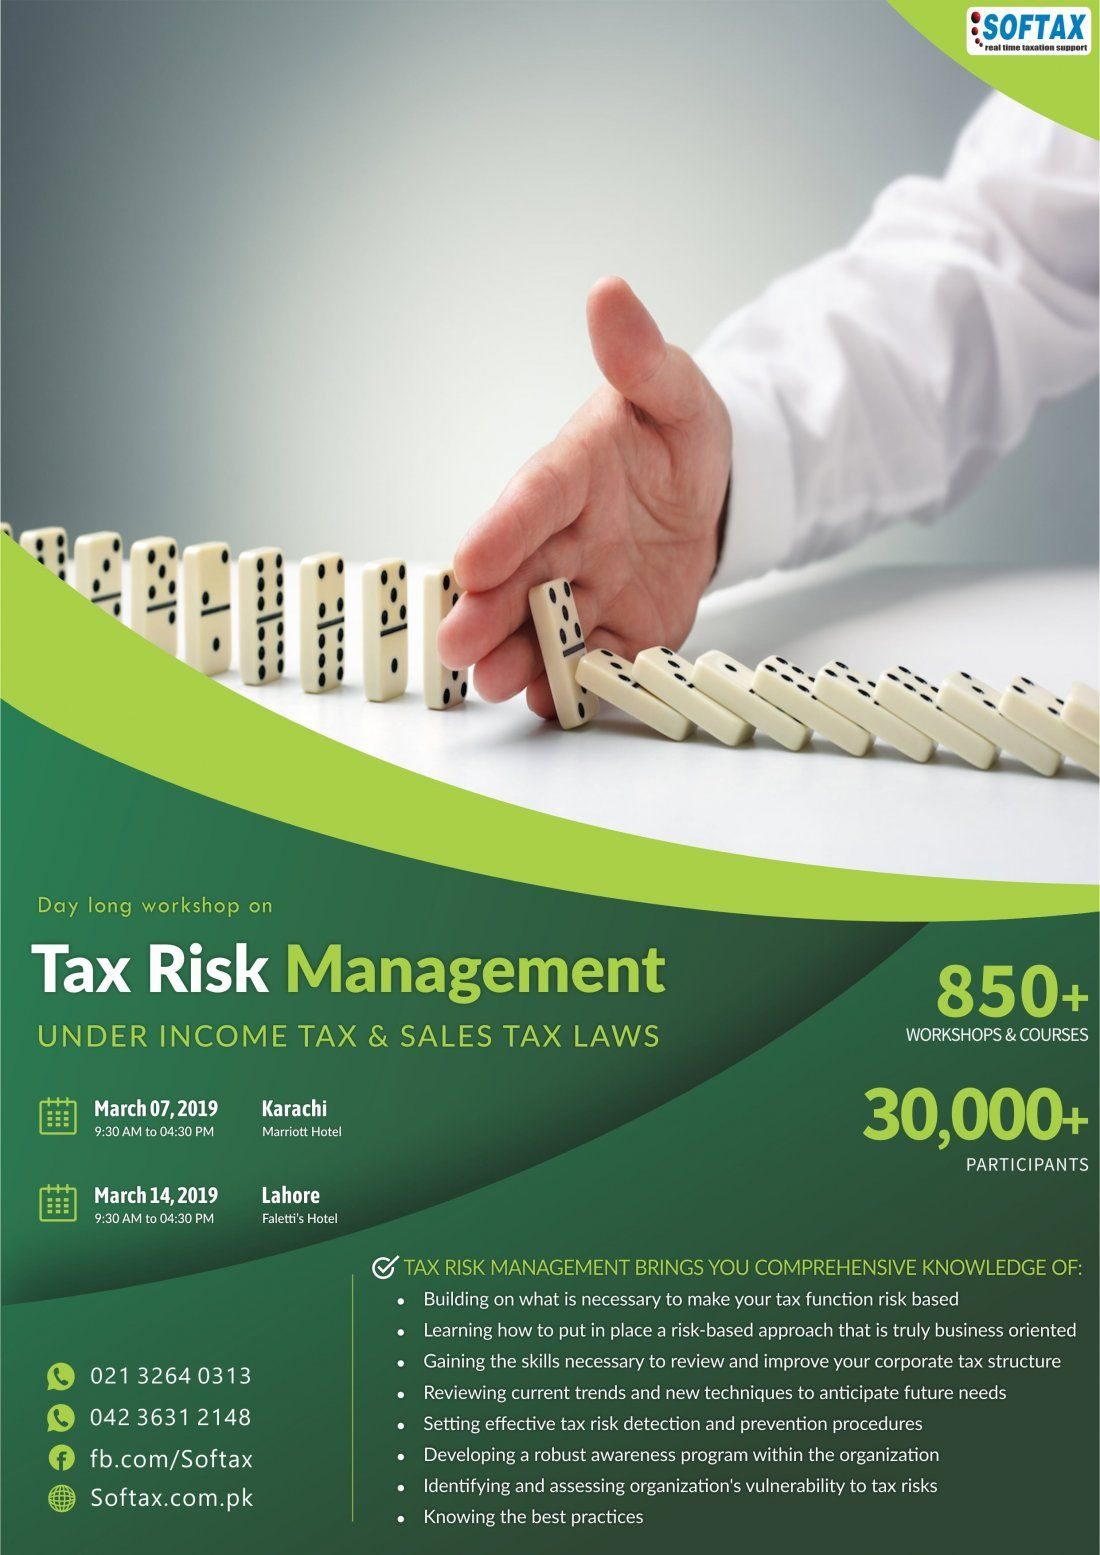 Day long workshop on Tax Risk Management UNDER INCOME TAX & SALES TAX LAWS